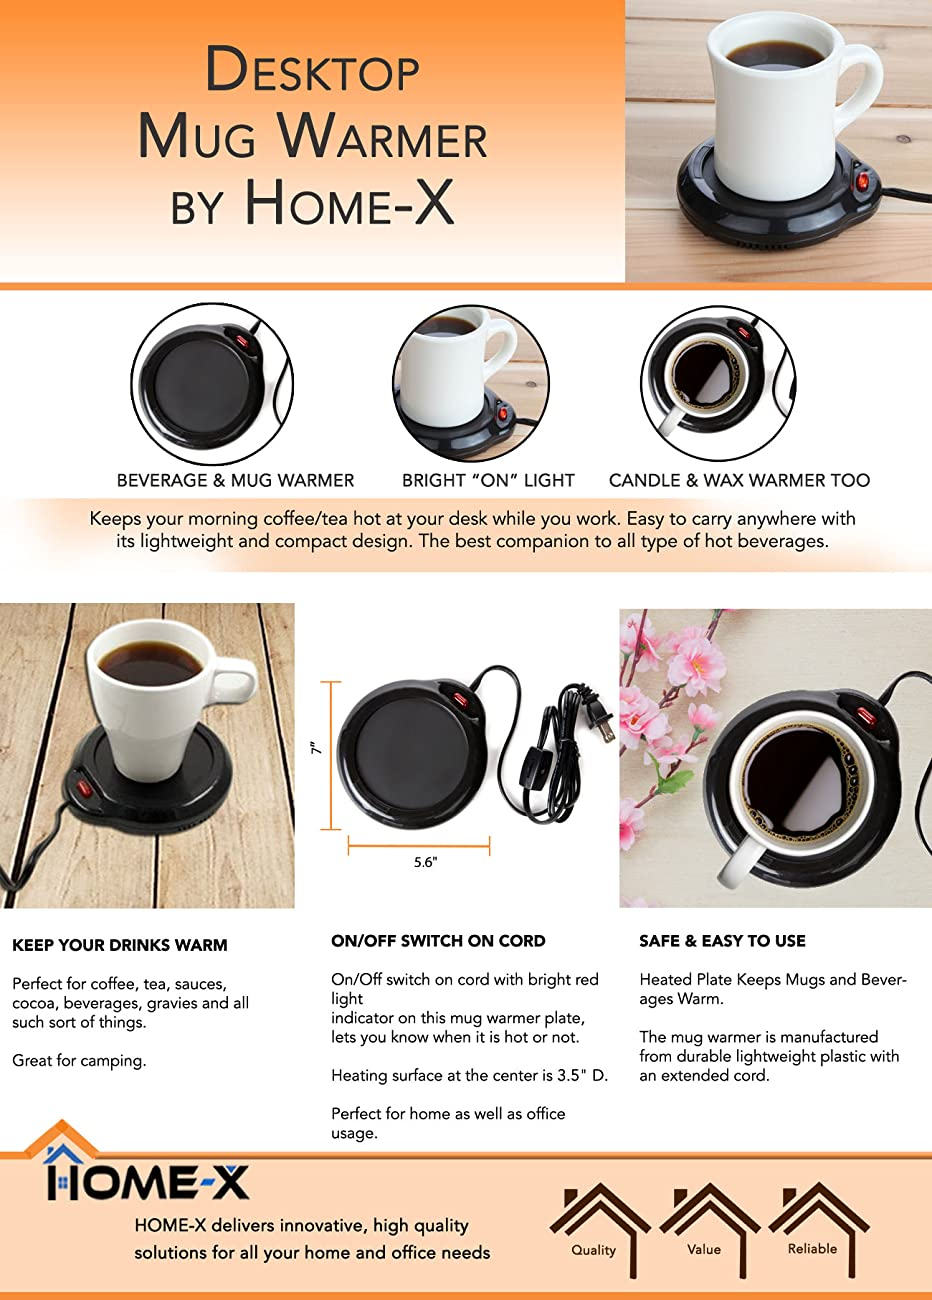 Home X Mug Warmer, Desktop Heated Coffee U0026 Tea   Candle U0026 Wax Warmer (Black)